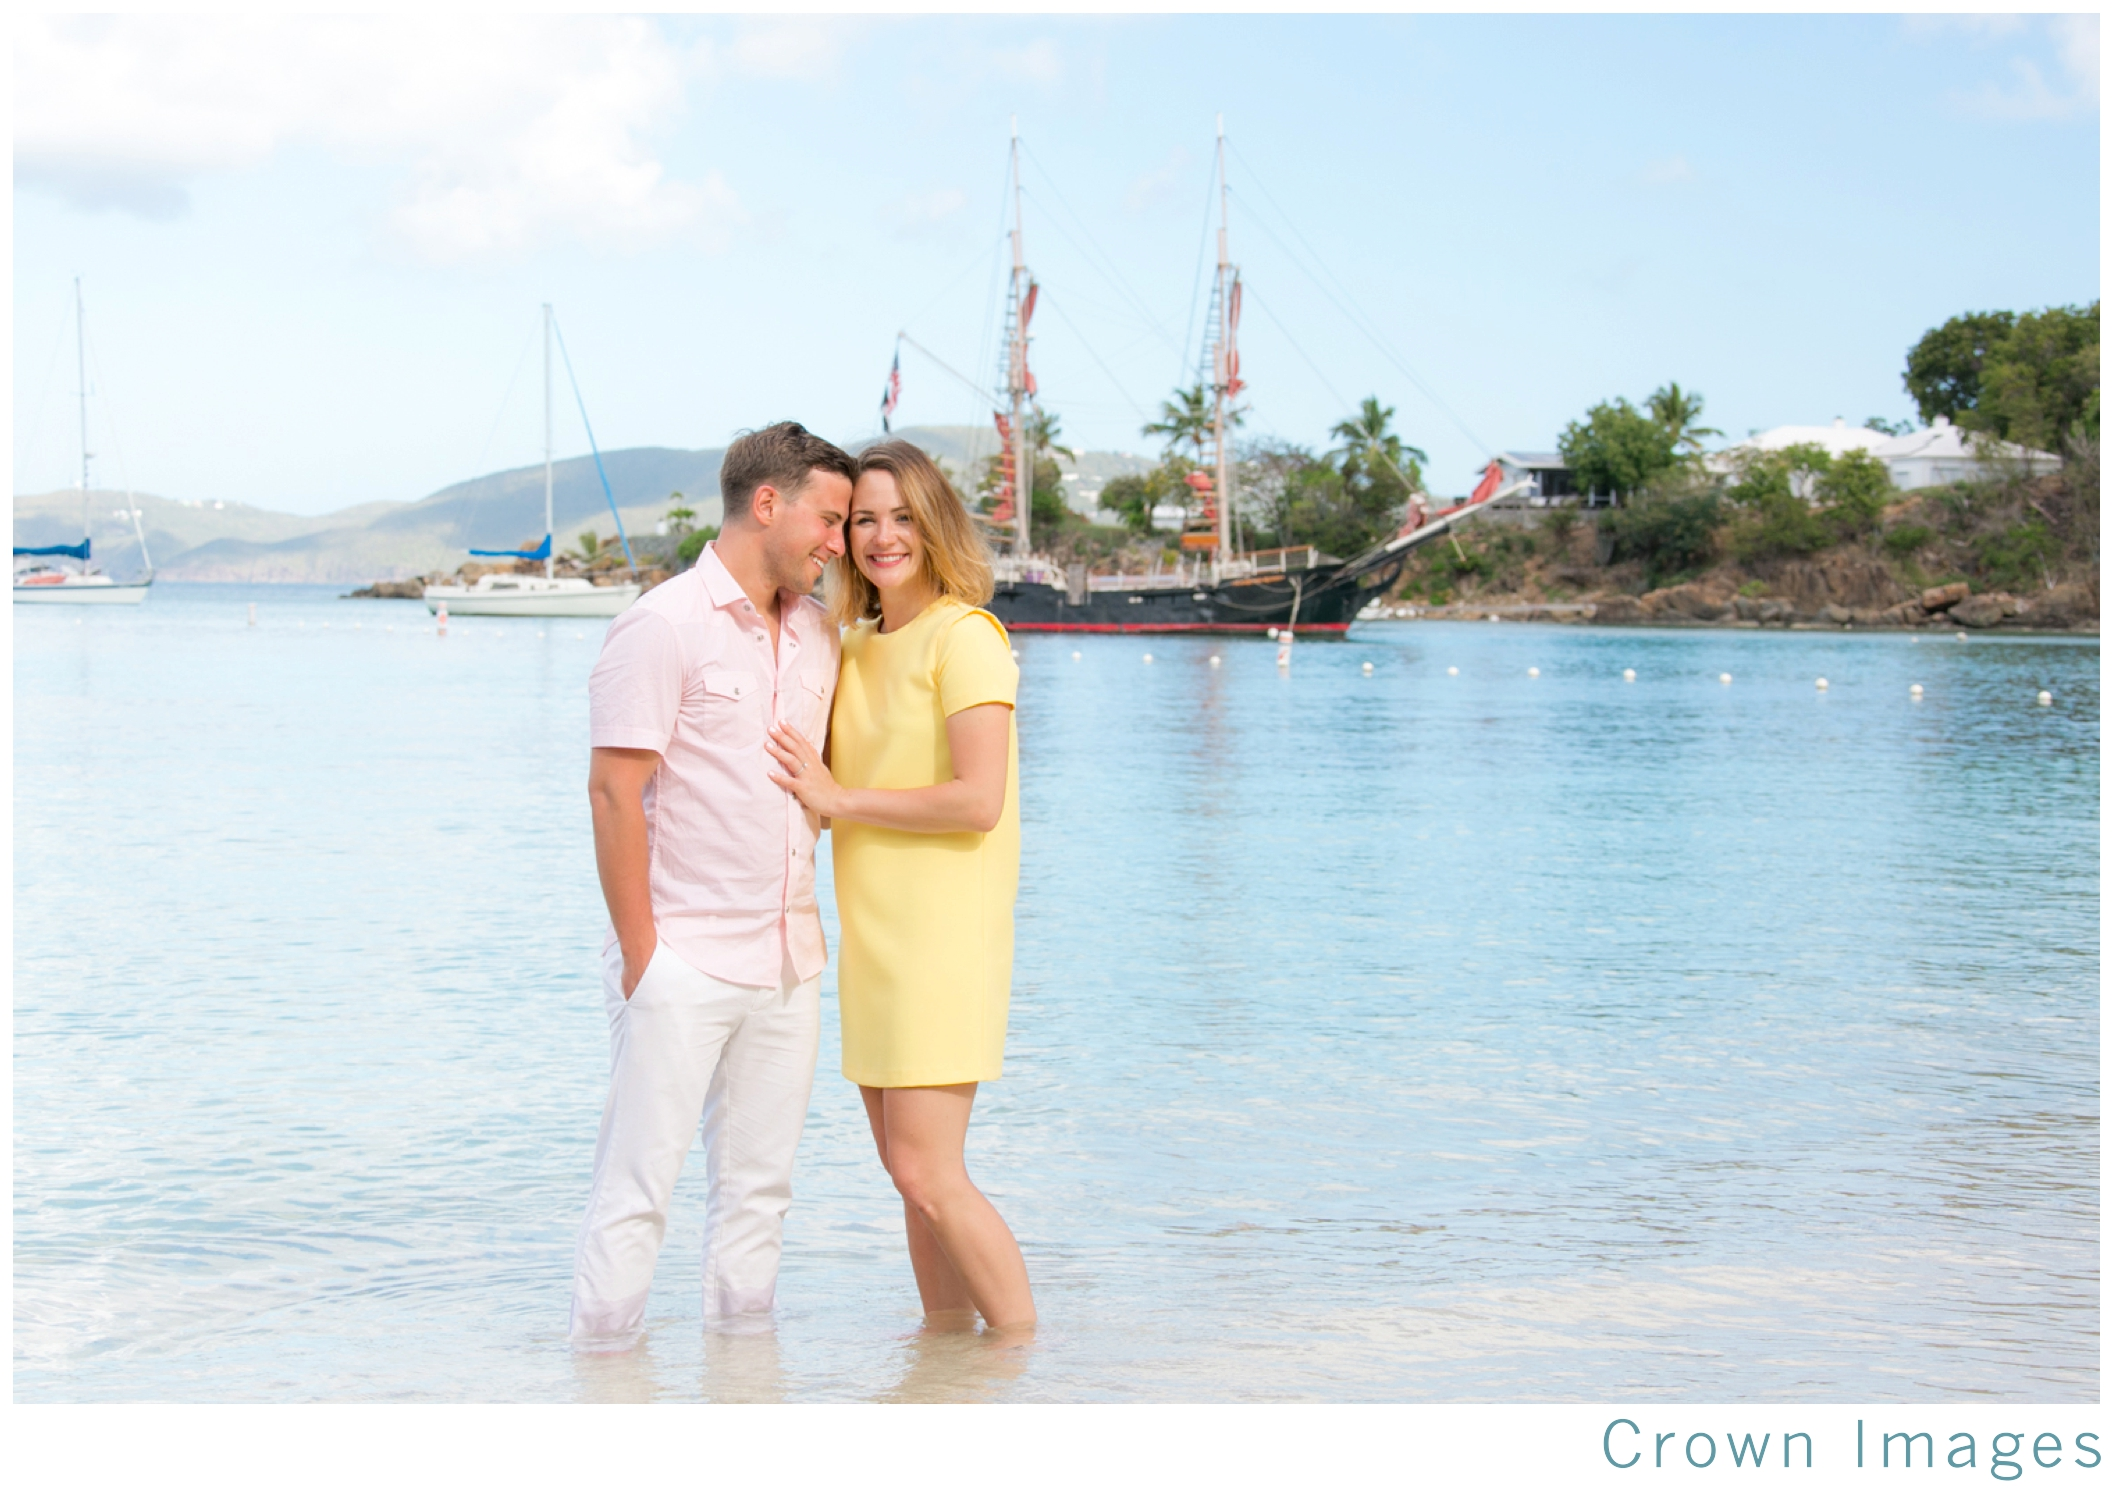 engagement-photos-water-island-virgin-islands_1157.jpg